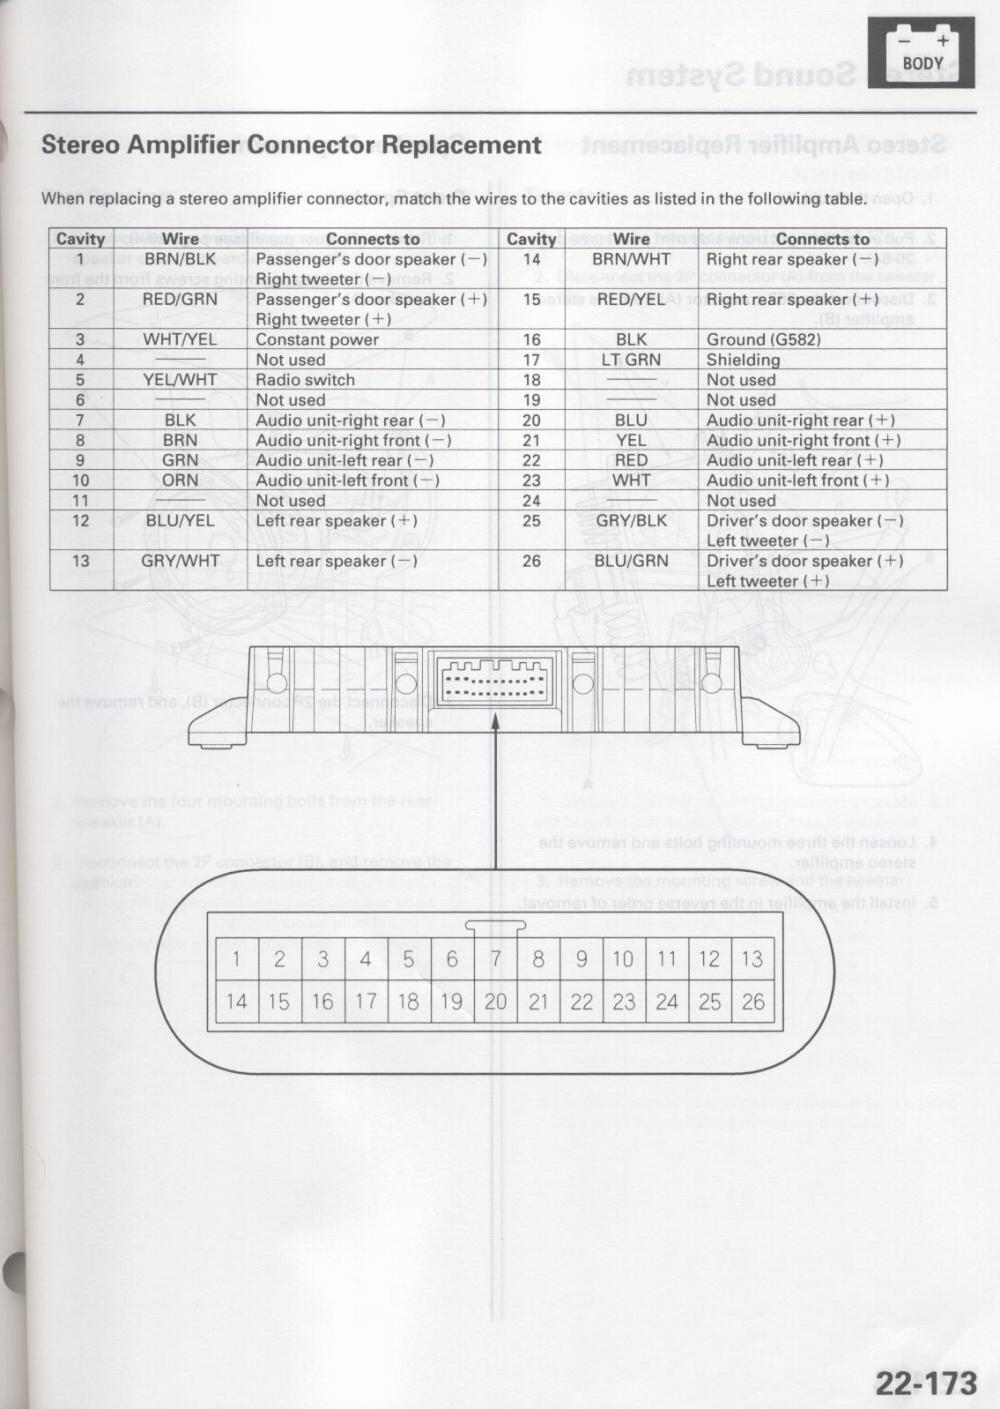 car radio stereo audio wiring diagram autoradio connector wire installation schematic schema Acura TL 2006 Acura TL 2006